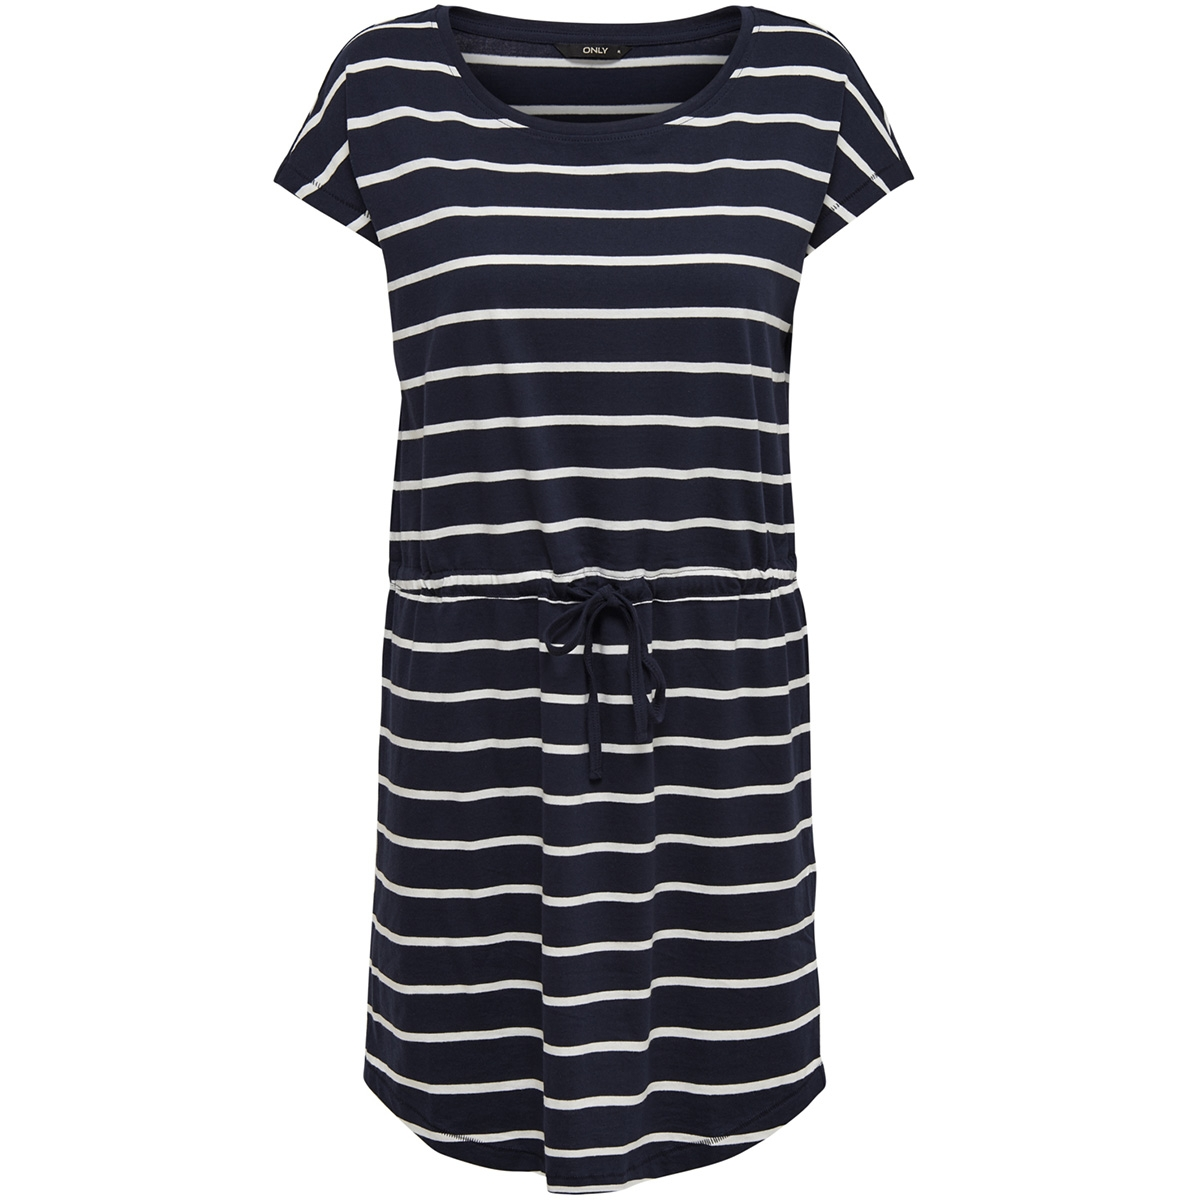 onlmay s/s dress noos 15153021 only jurk night sky/primo stripes